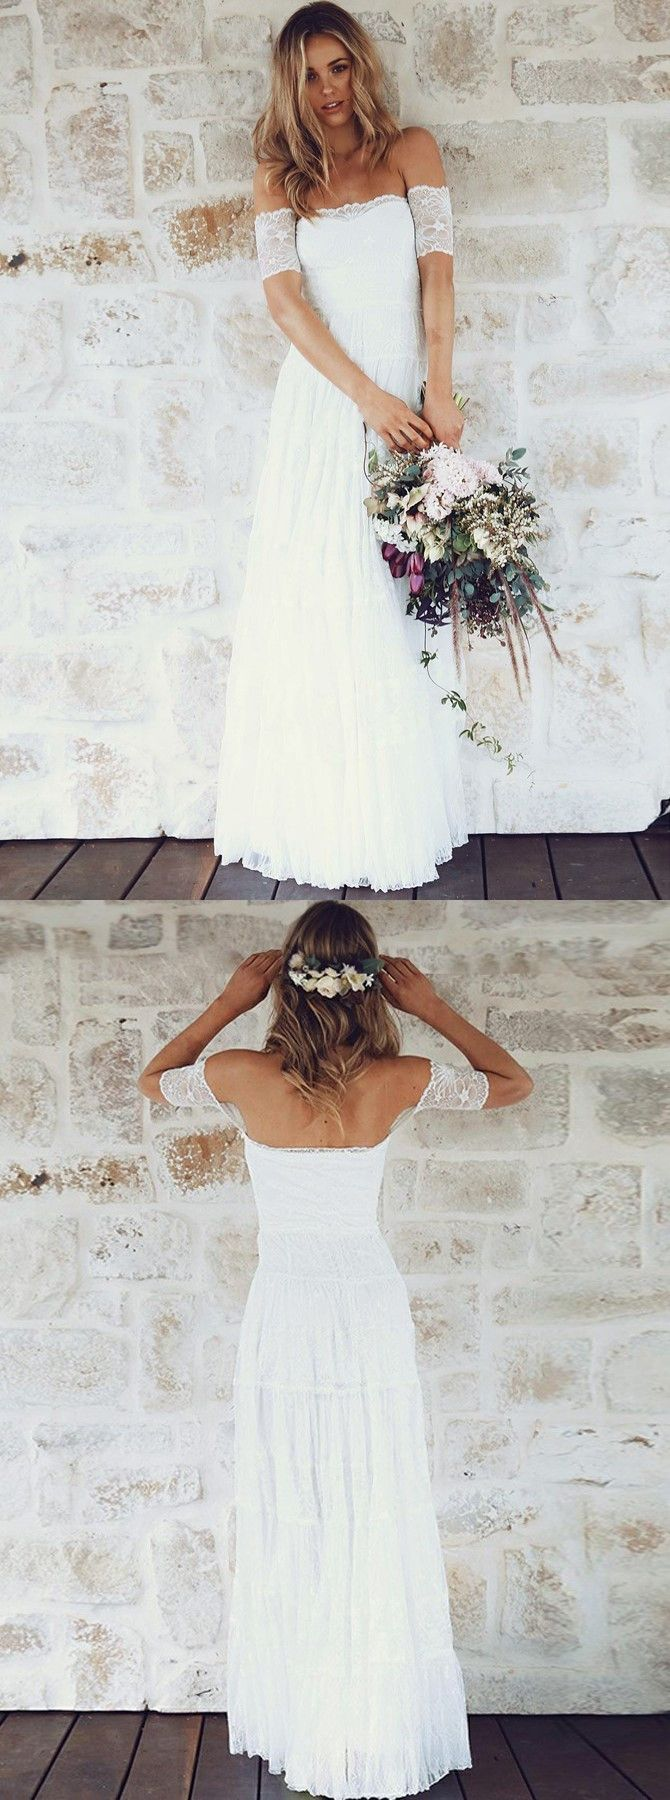 Beach wedding party dresses  simple off shoulder wedding party dresses fashion beach wedding